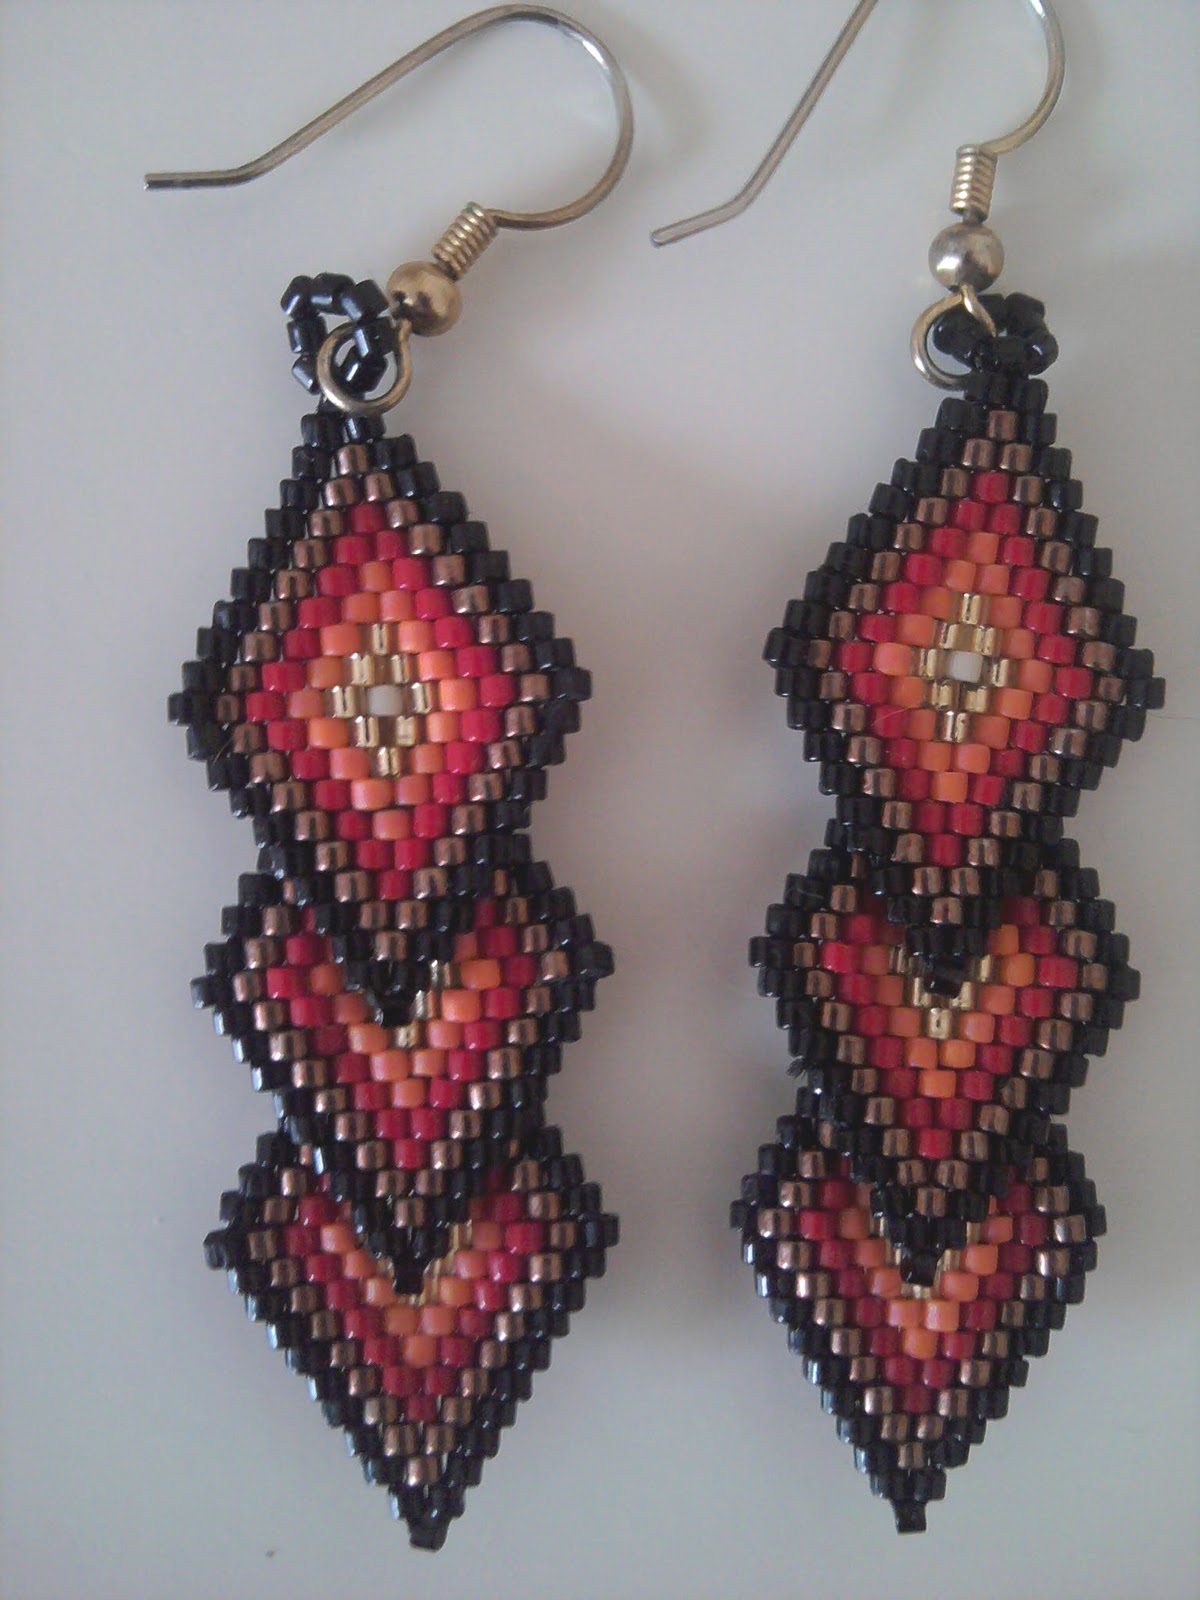 Brick Stitch Earrings in Beading http://jospickbeadwork.blogspot.com/p/beadweaving-gallery.html